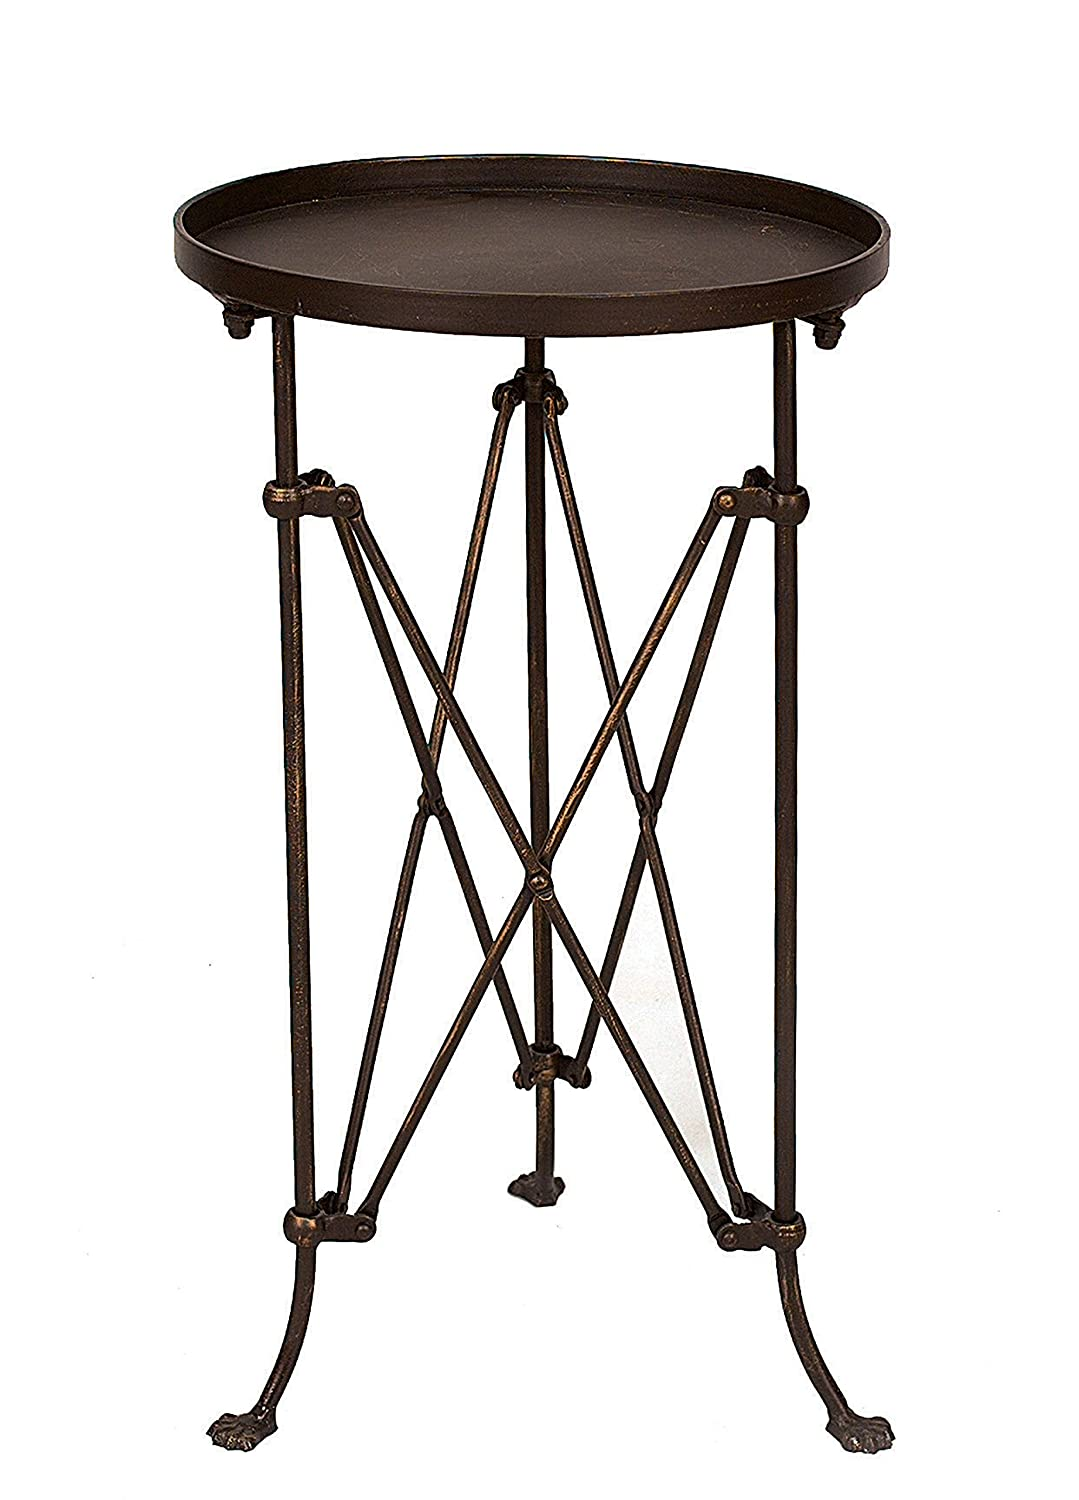 Round bronze accent table with accordion style base and little claw feet - a chic side table for living rooms, bathrooms, bedrooms and beyond.